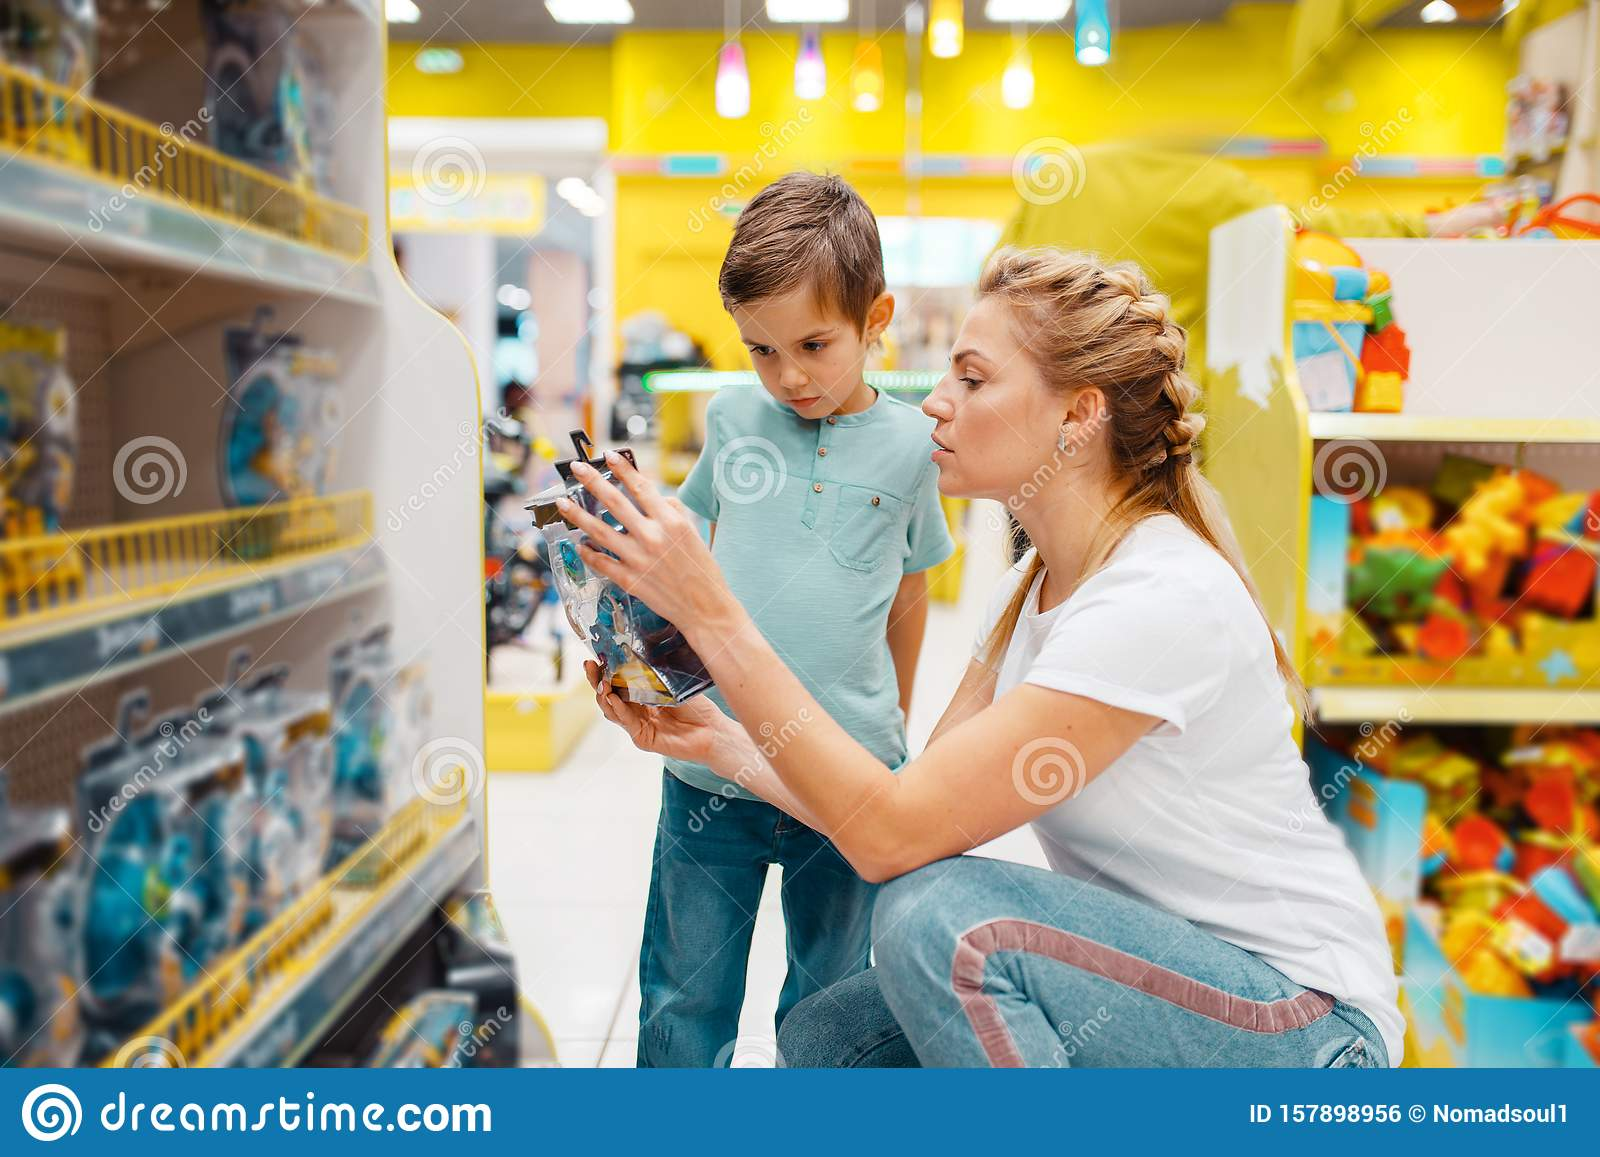 Happy Mother With Her Little Son In Kids Store Stock Photo Image Of Choice Indoor 157898956